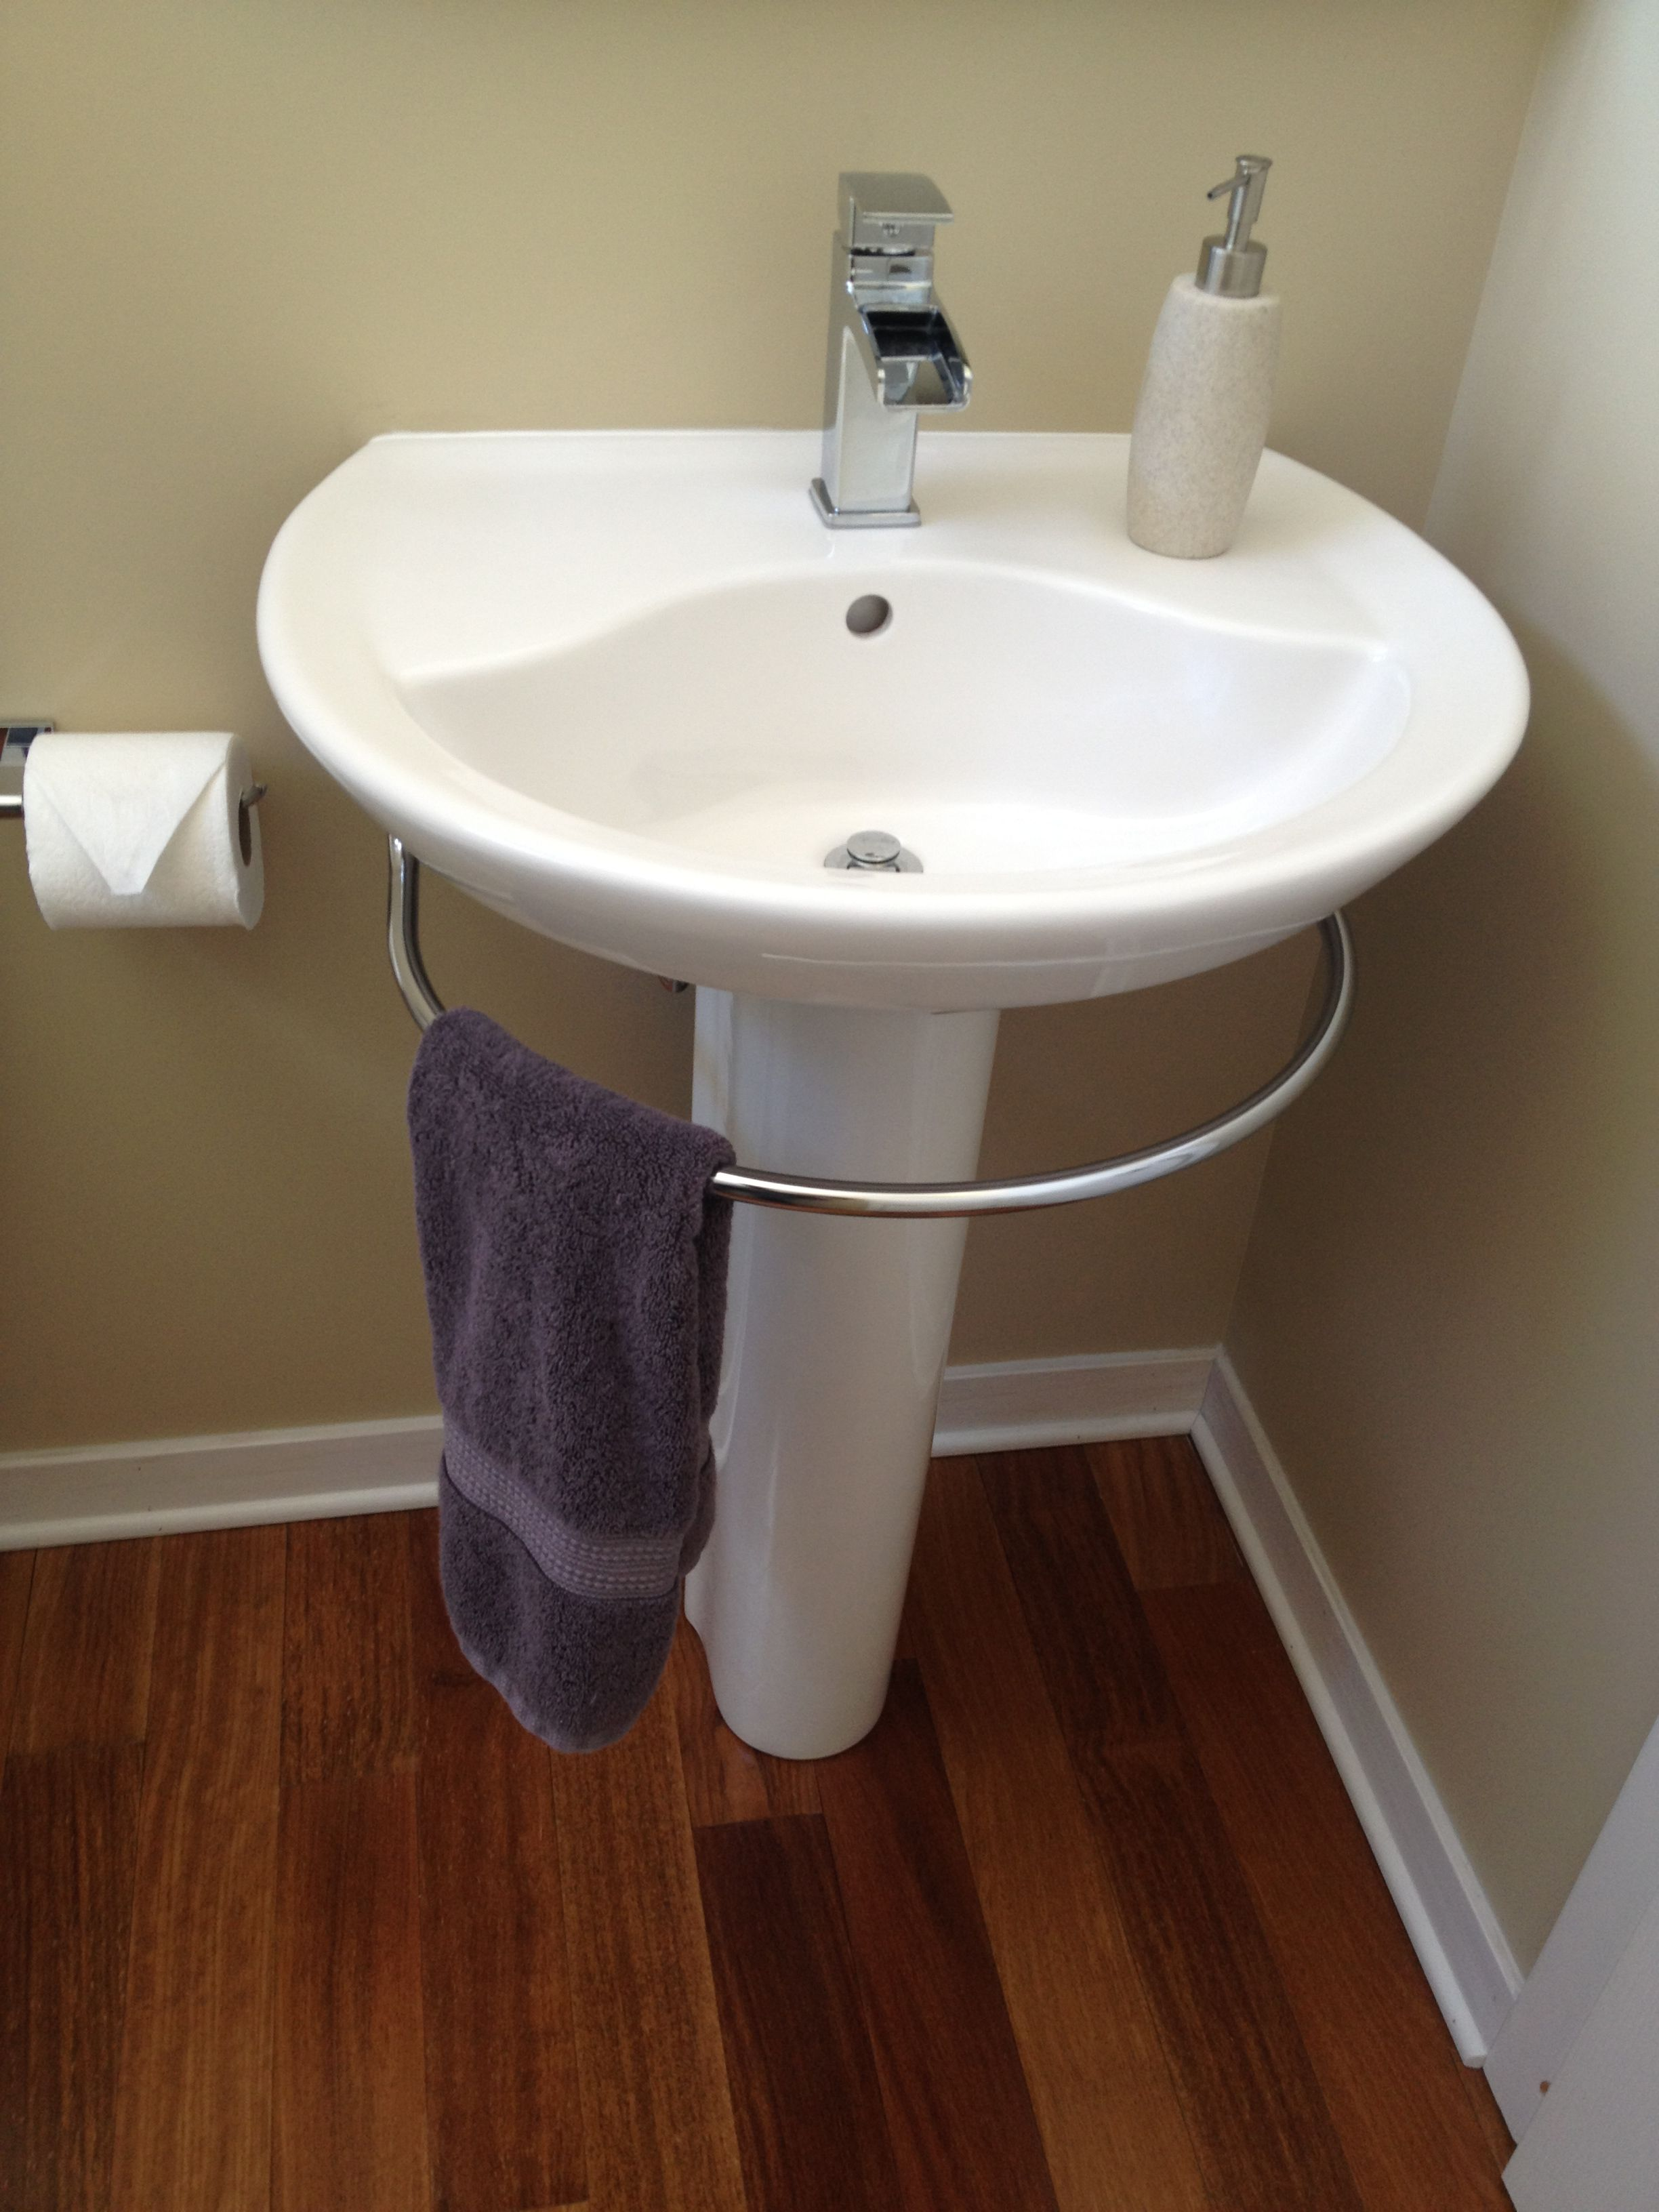 Guest Bath New American Standard Pedestal Sink With Towel Bar And